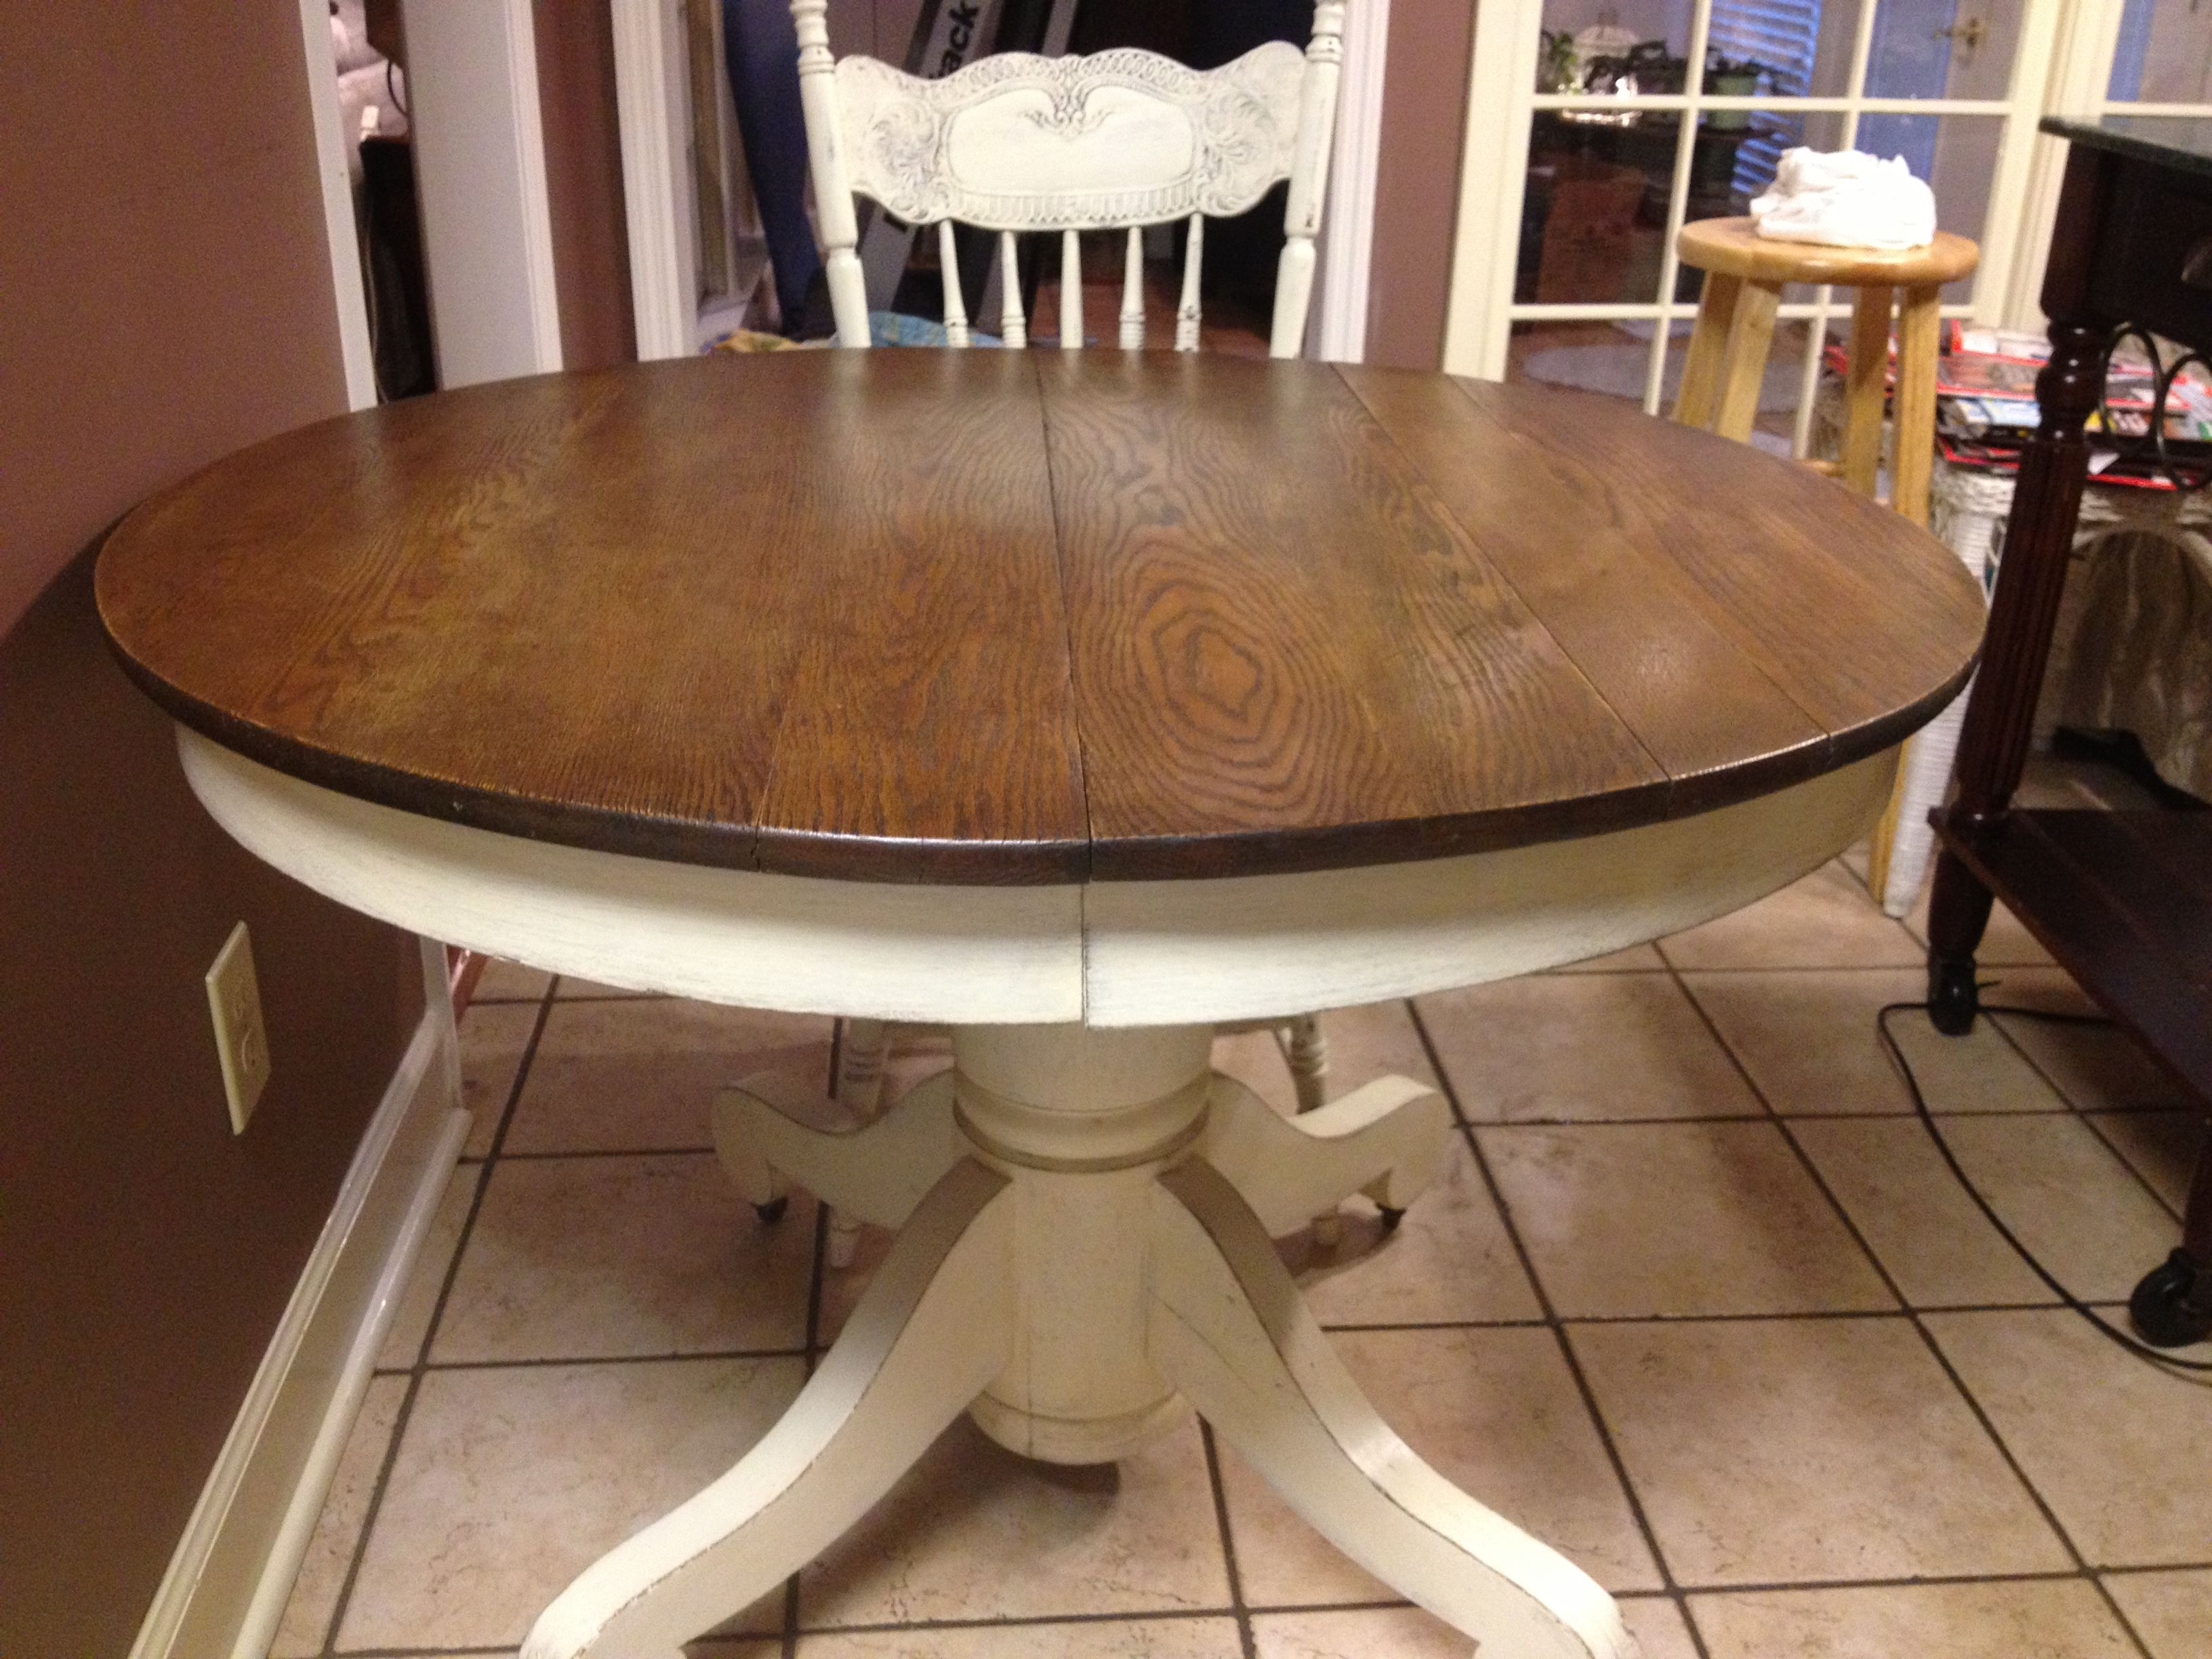 Used Kitchen Table And Chairs Beach Chair With Cooler Painted In Old White Left The